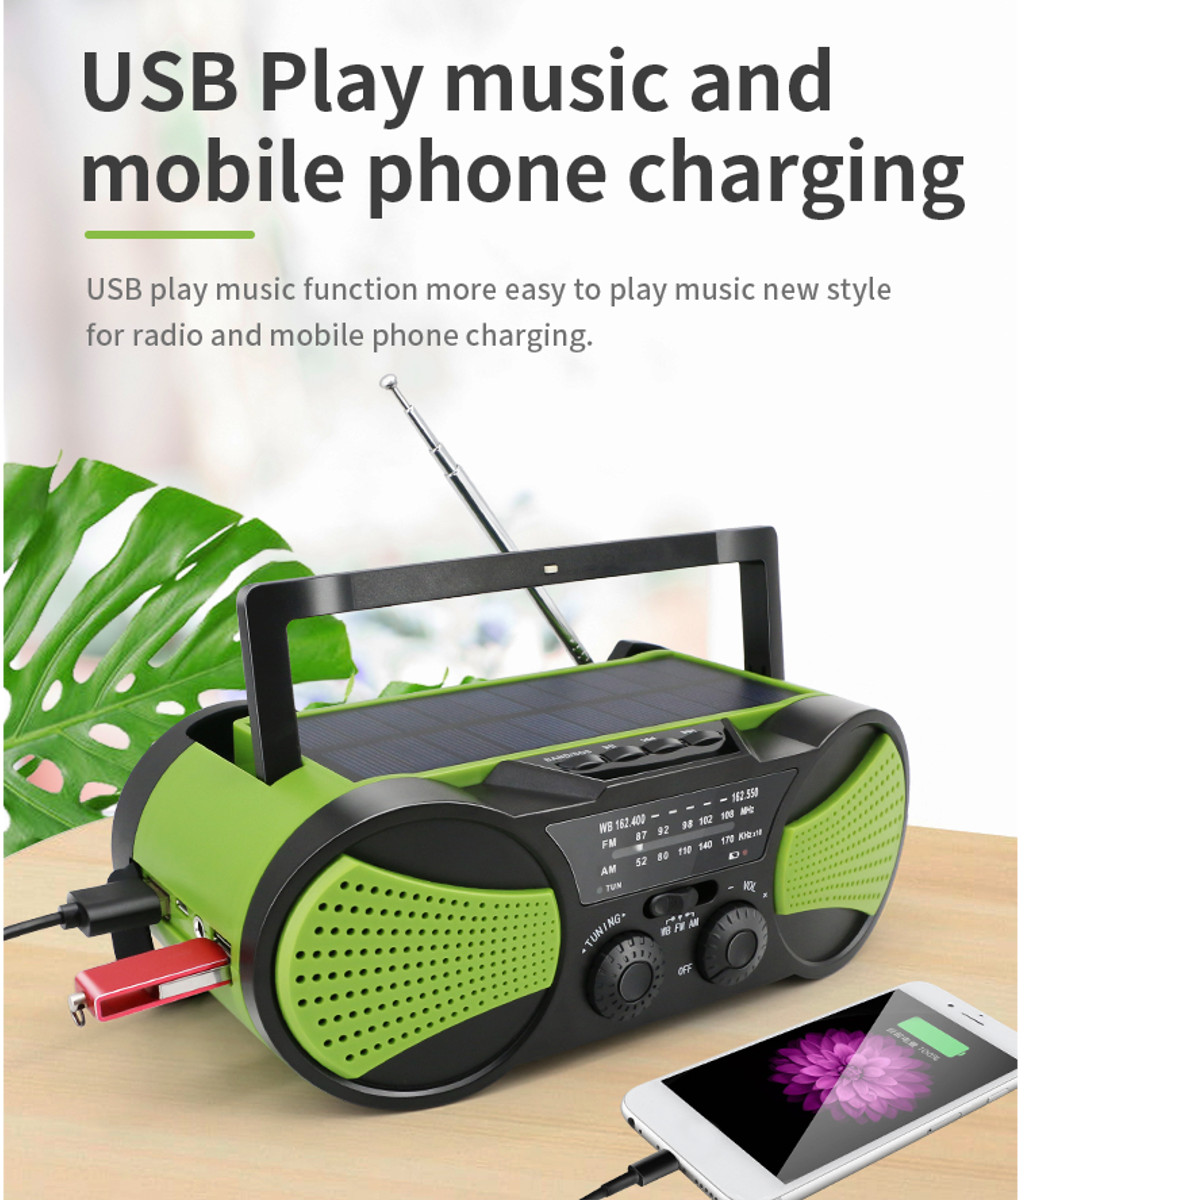 Solar Power Portable <font><b>Radio</b></font> 2000mAh Rechargeable WB Crank Emergency Power Bank Hand Crank Self Powered AM/FM Weather image